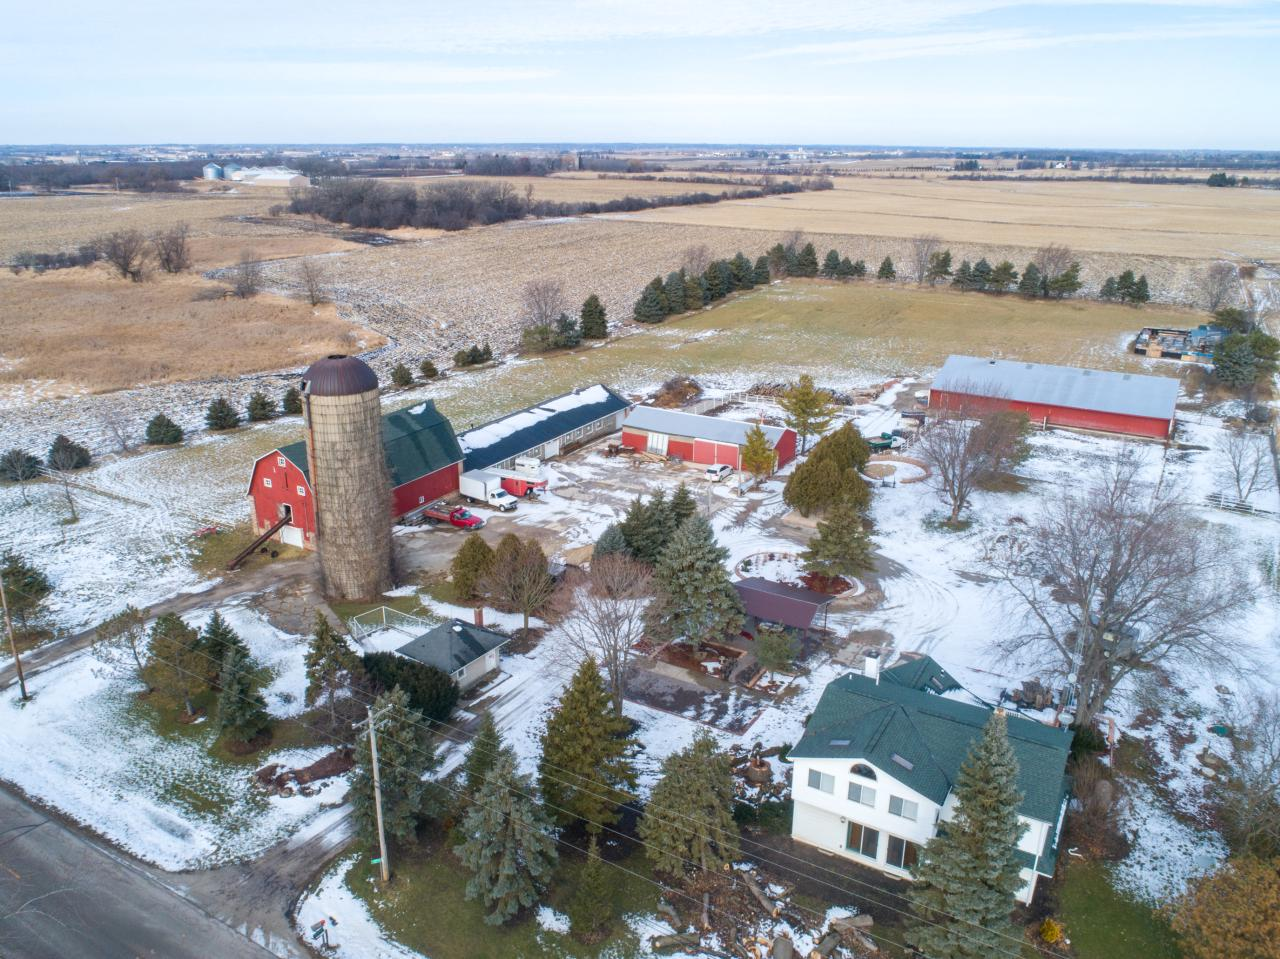 Located approximately one mile west from the upcoming Foxconn company campus! Perfect opportunity for potential developers to utilize this 7.88 hobby farm parcel with numerous outbuildings, and a 1920 remodeled farmhouse. Also included is a 120x60 pole barn zoned for commercial usage.